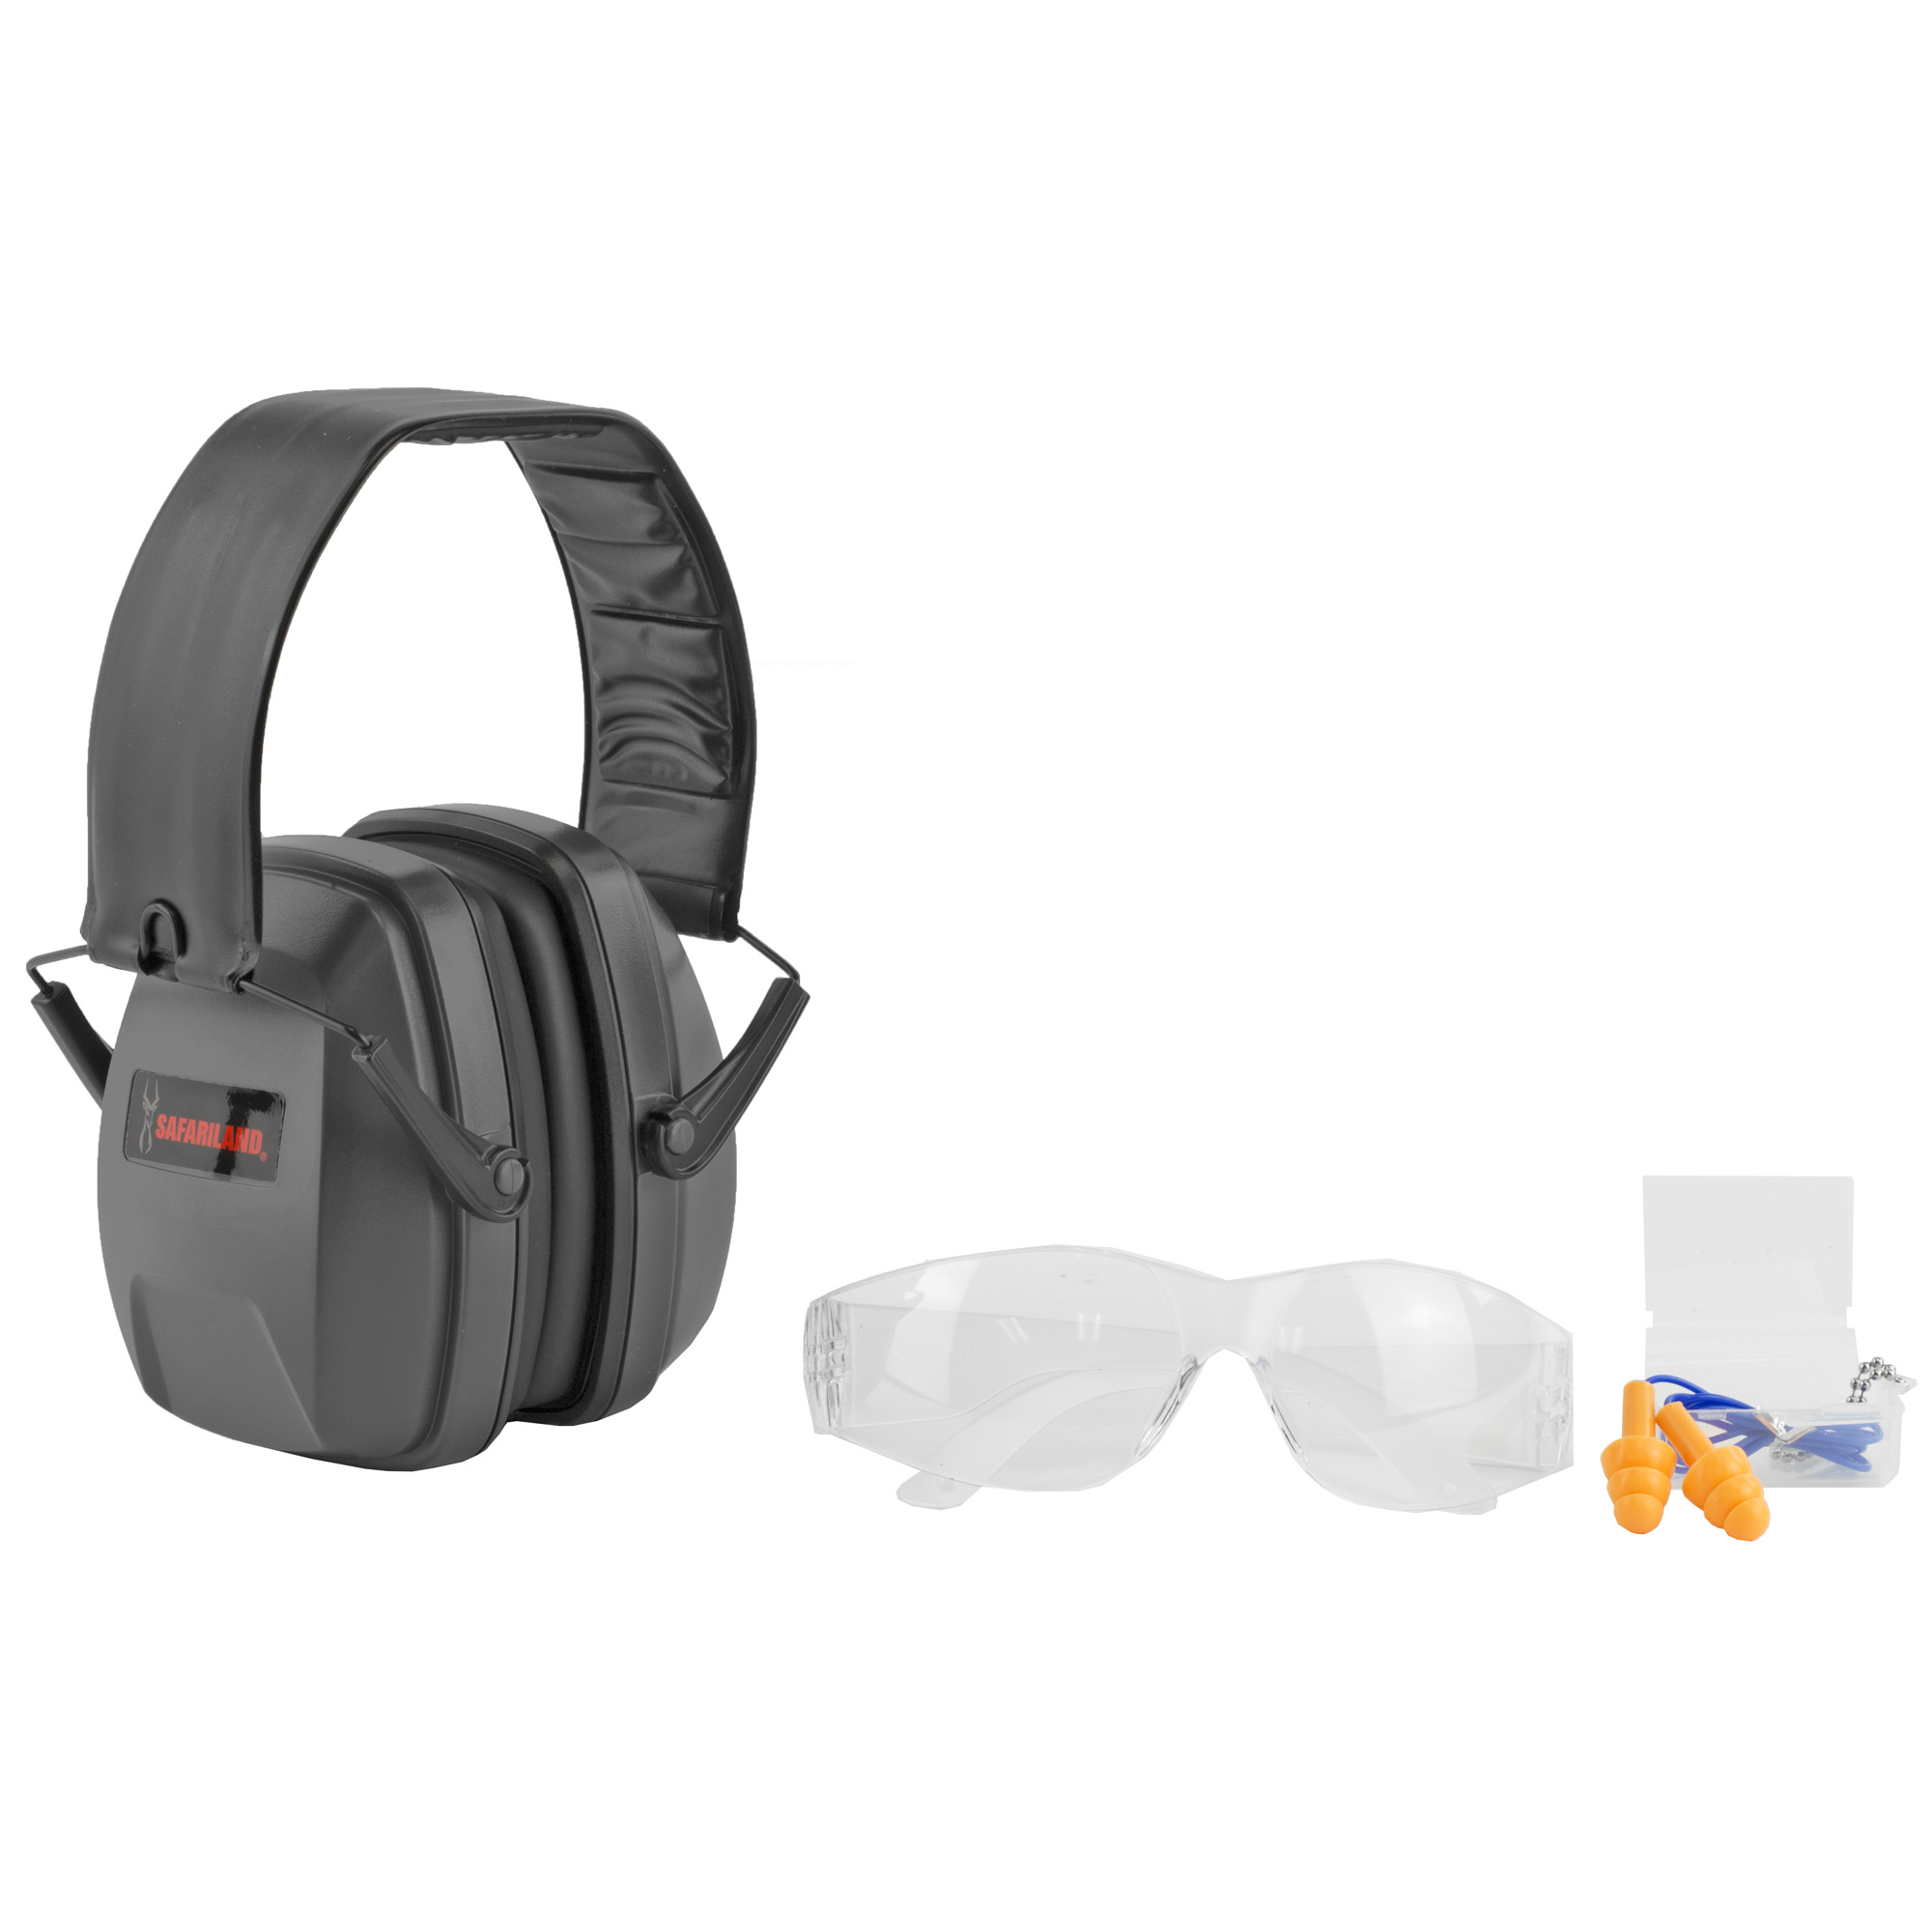 "The Safariland Range Kit includes everything you need at the Shooting Range. A pair of clear HD polycarbonate shooting glasses for eye protection. Soft"" pliable"" triple-flange ear plugs provide an optimal seal and an NRR of 23dB. Adjustable earmuffs are also included with a NRR of 26dB and when combined with the earplugs a NRR of 33dB."